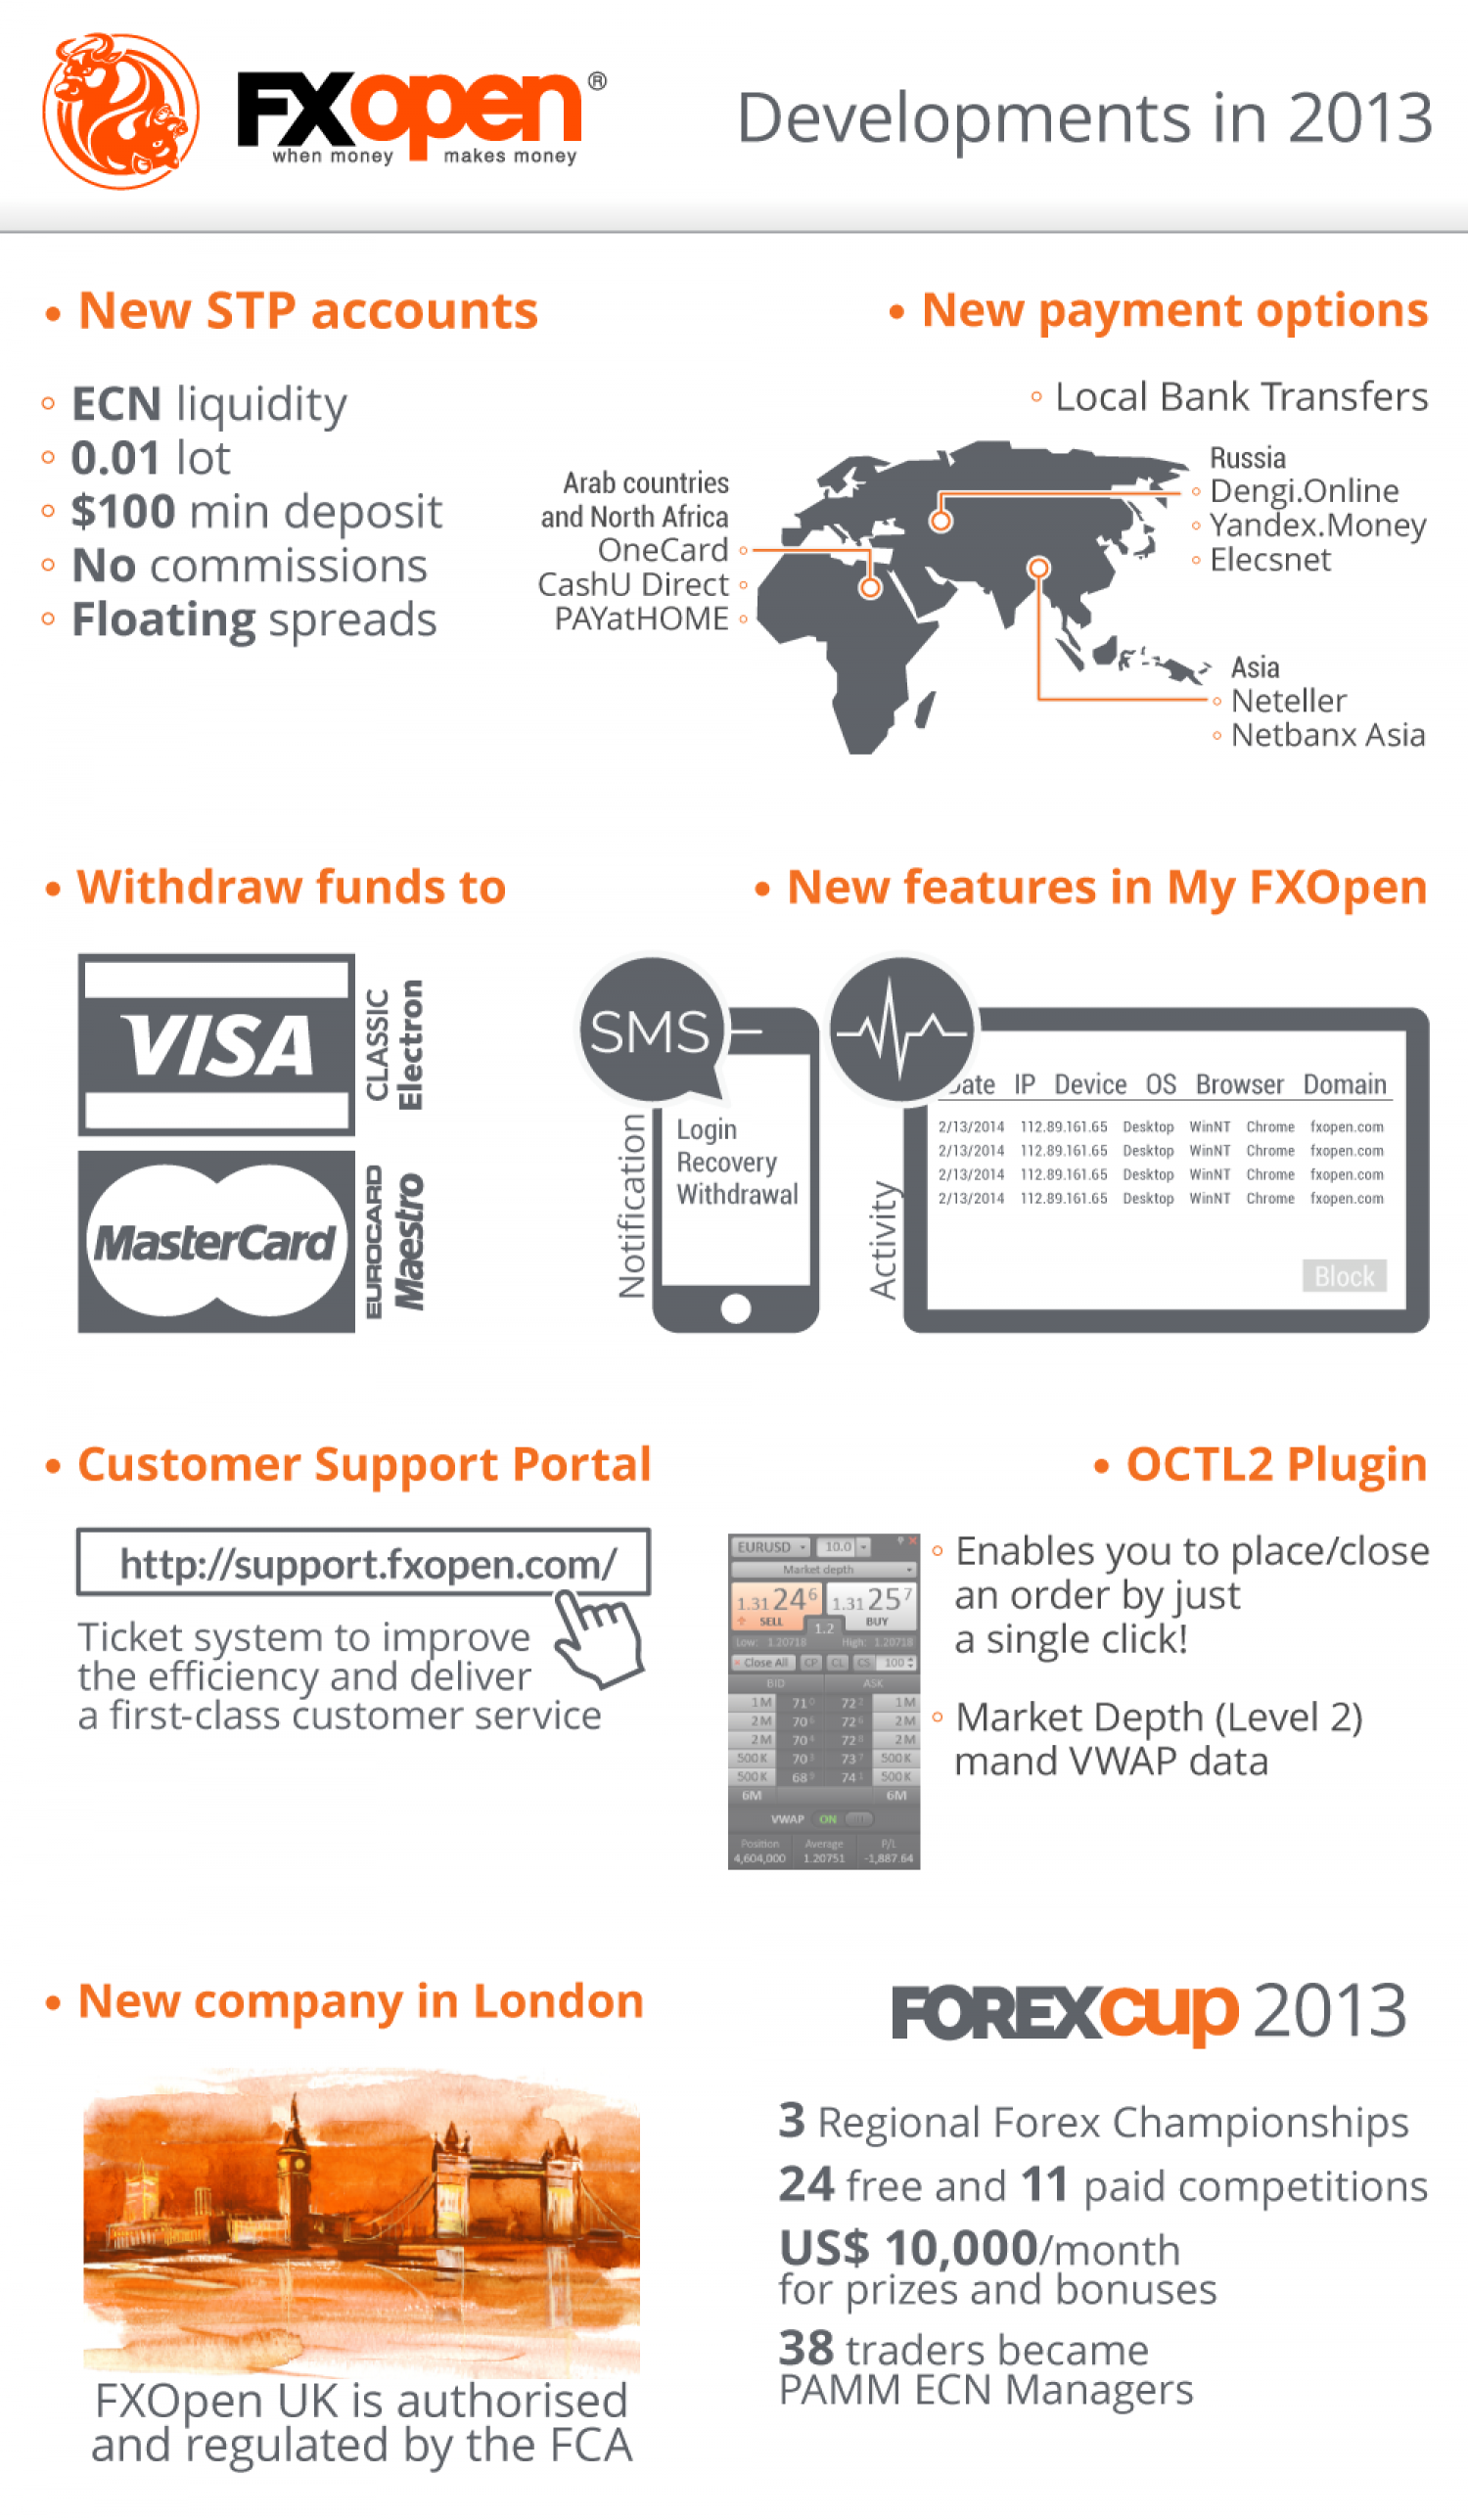 FXOpen Forex Broker Developments in 2013 Infographic